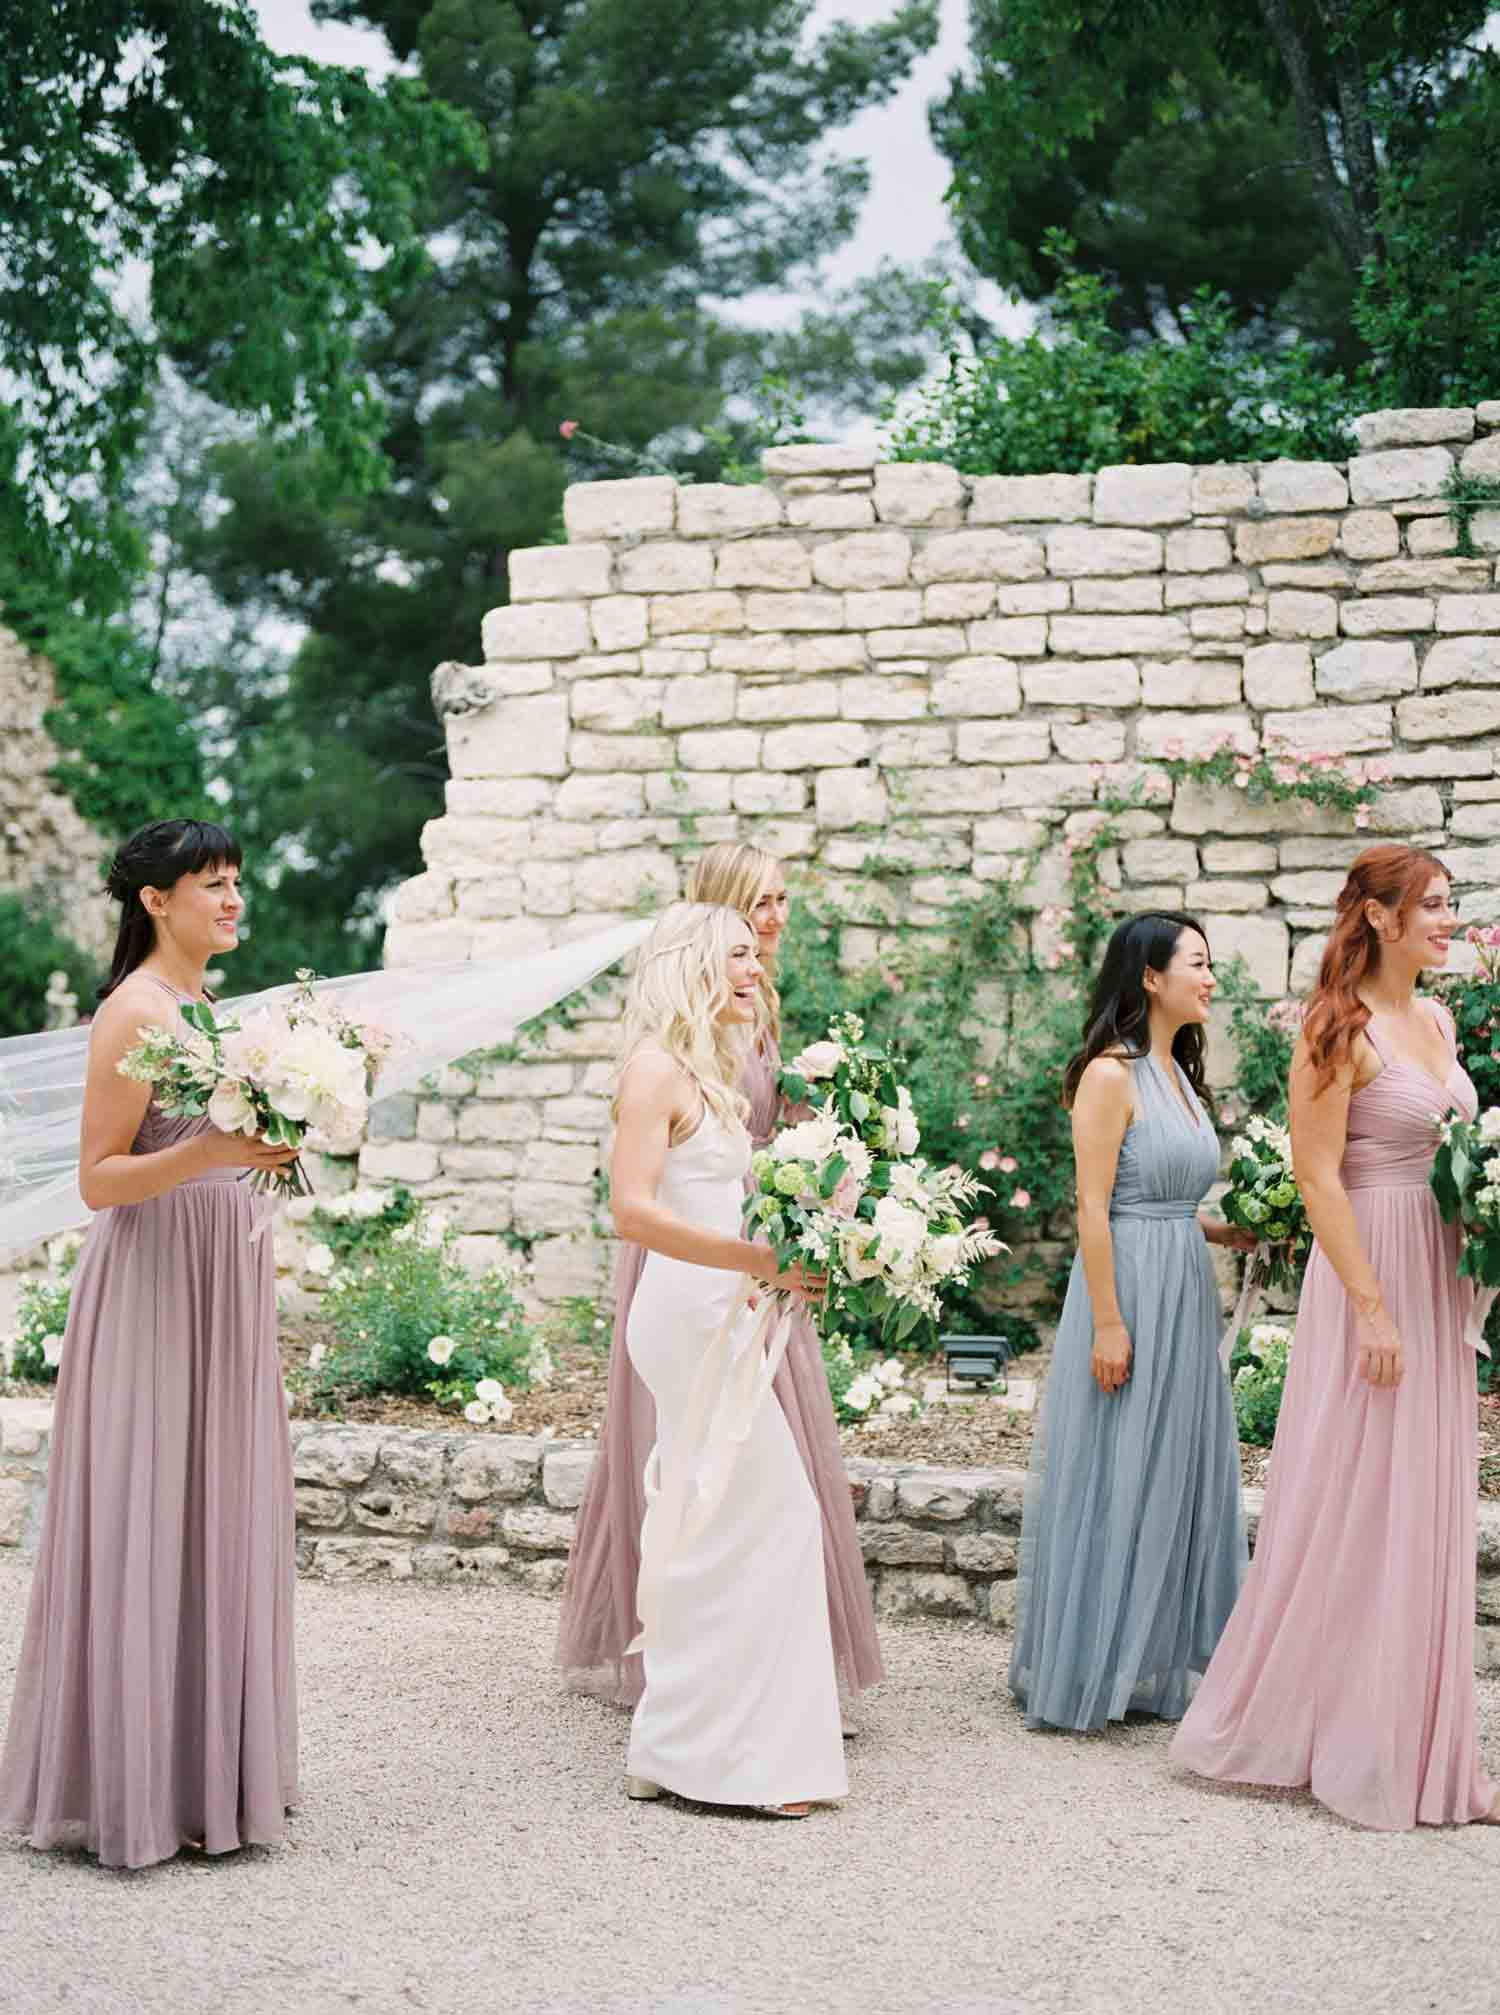 Bridesmaids walking outdoors with the bride.